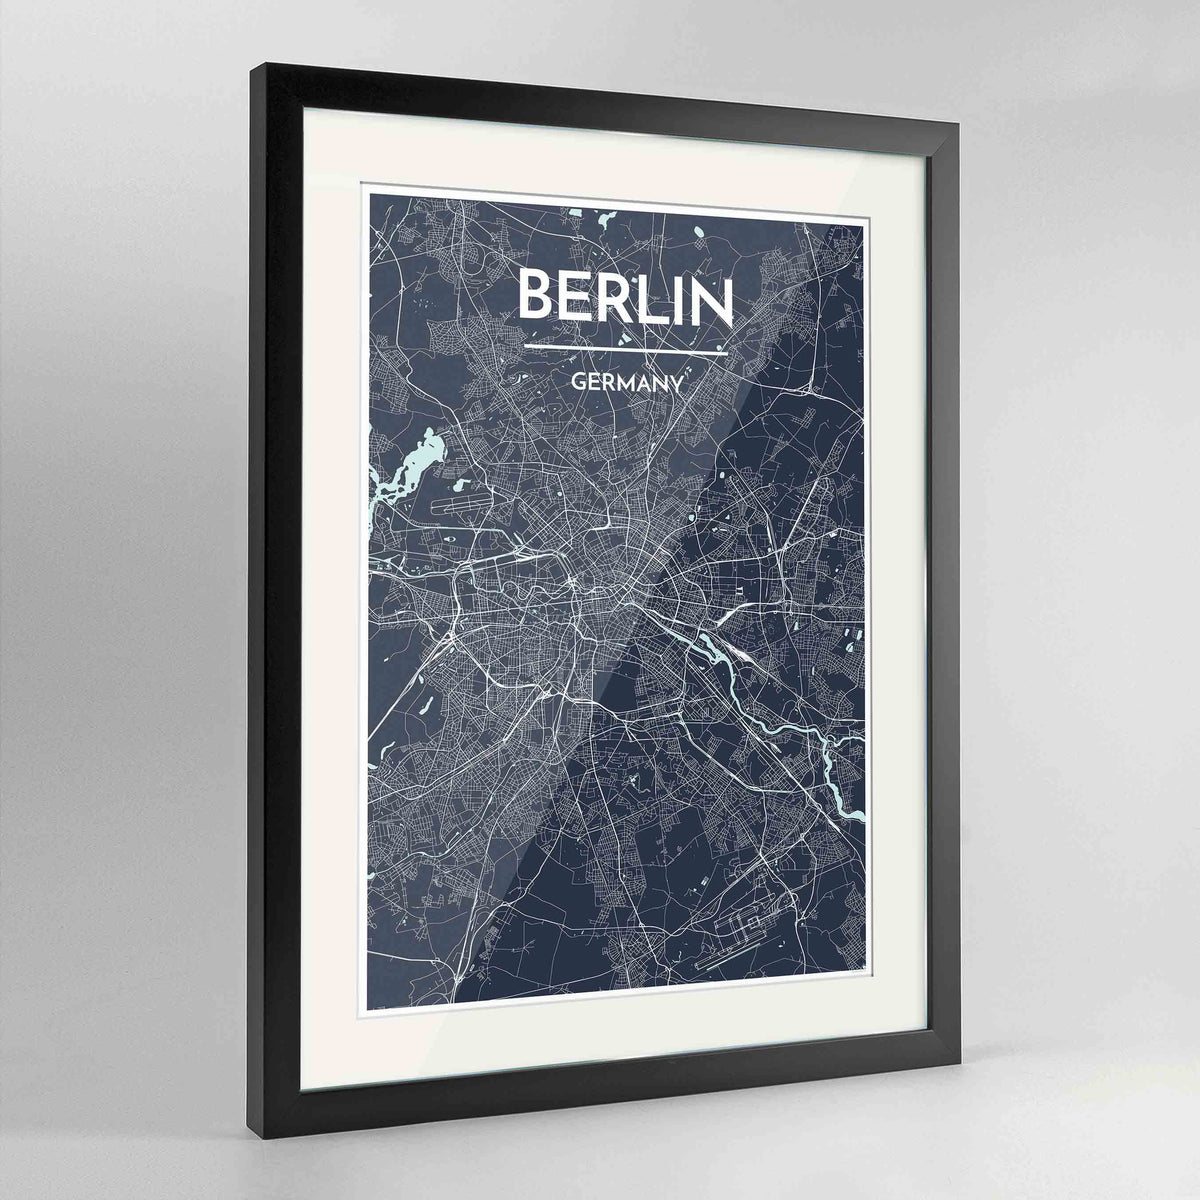 "Framed Berlin Map Art Print 24x36"" Contemporary Black frame Point Two Design Group"